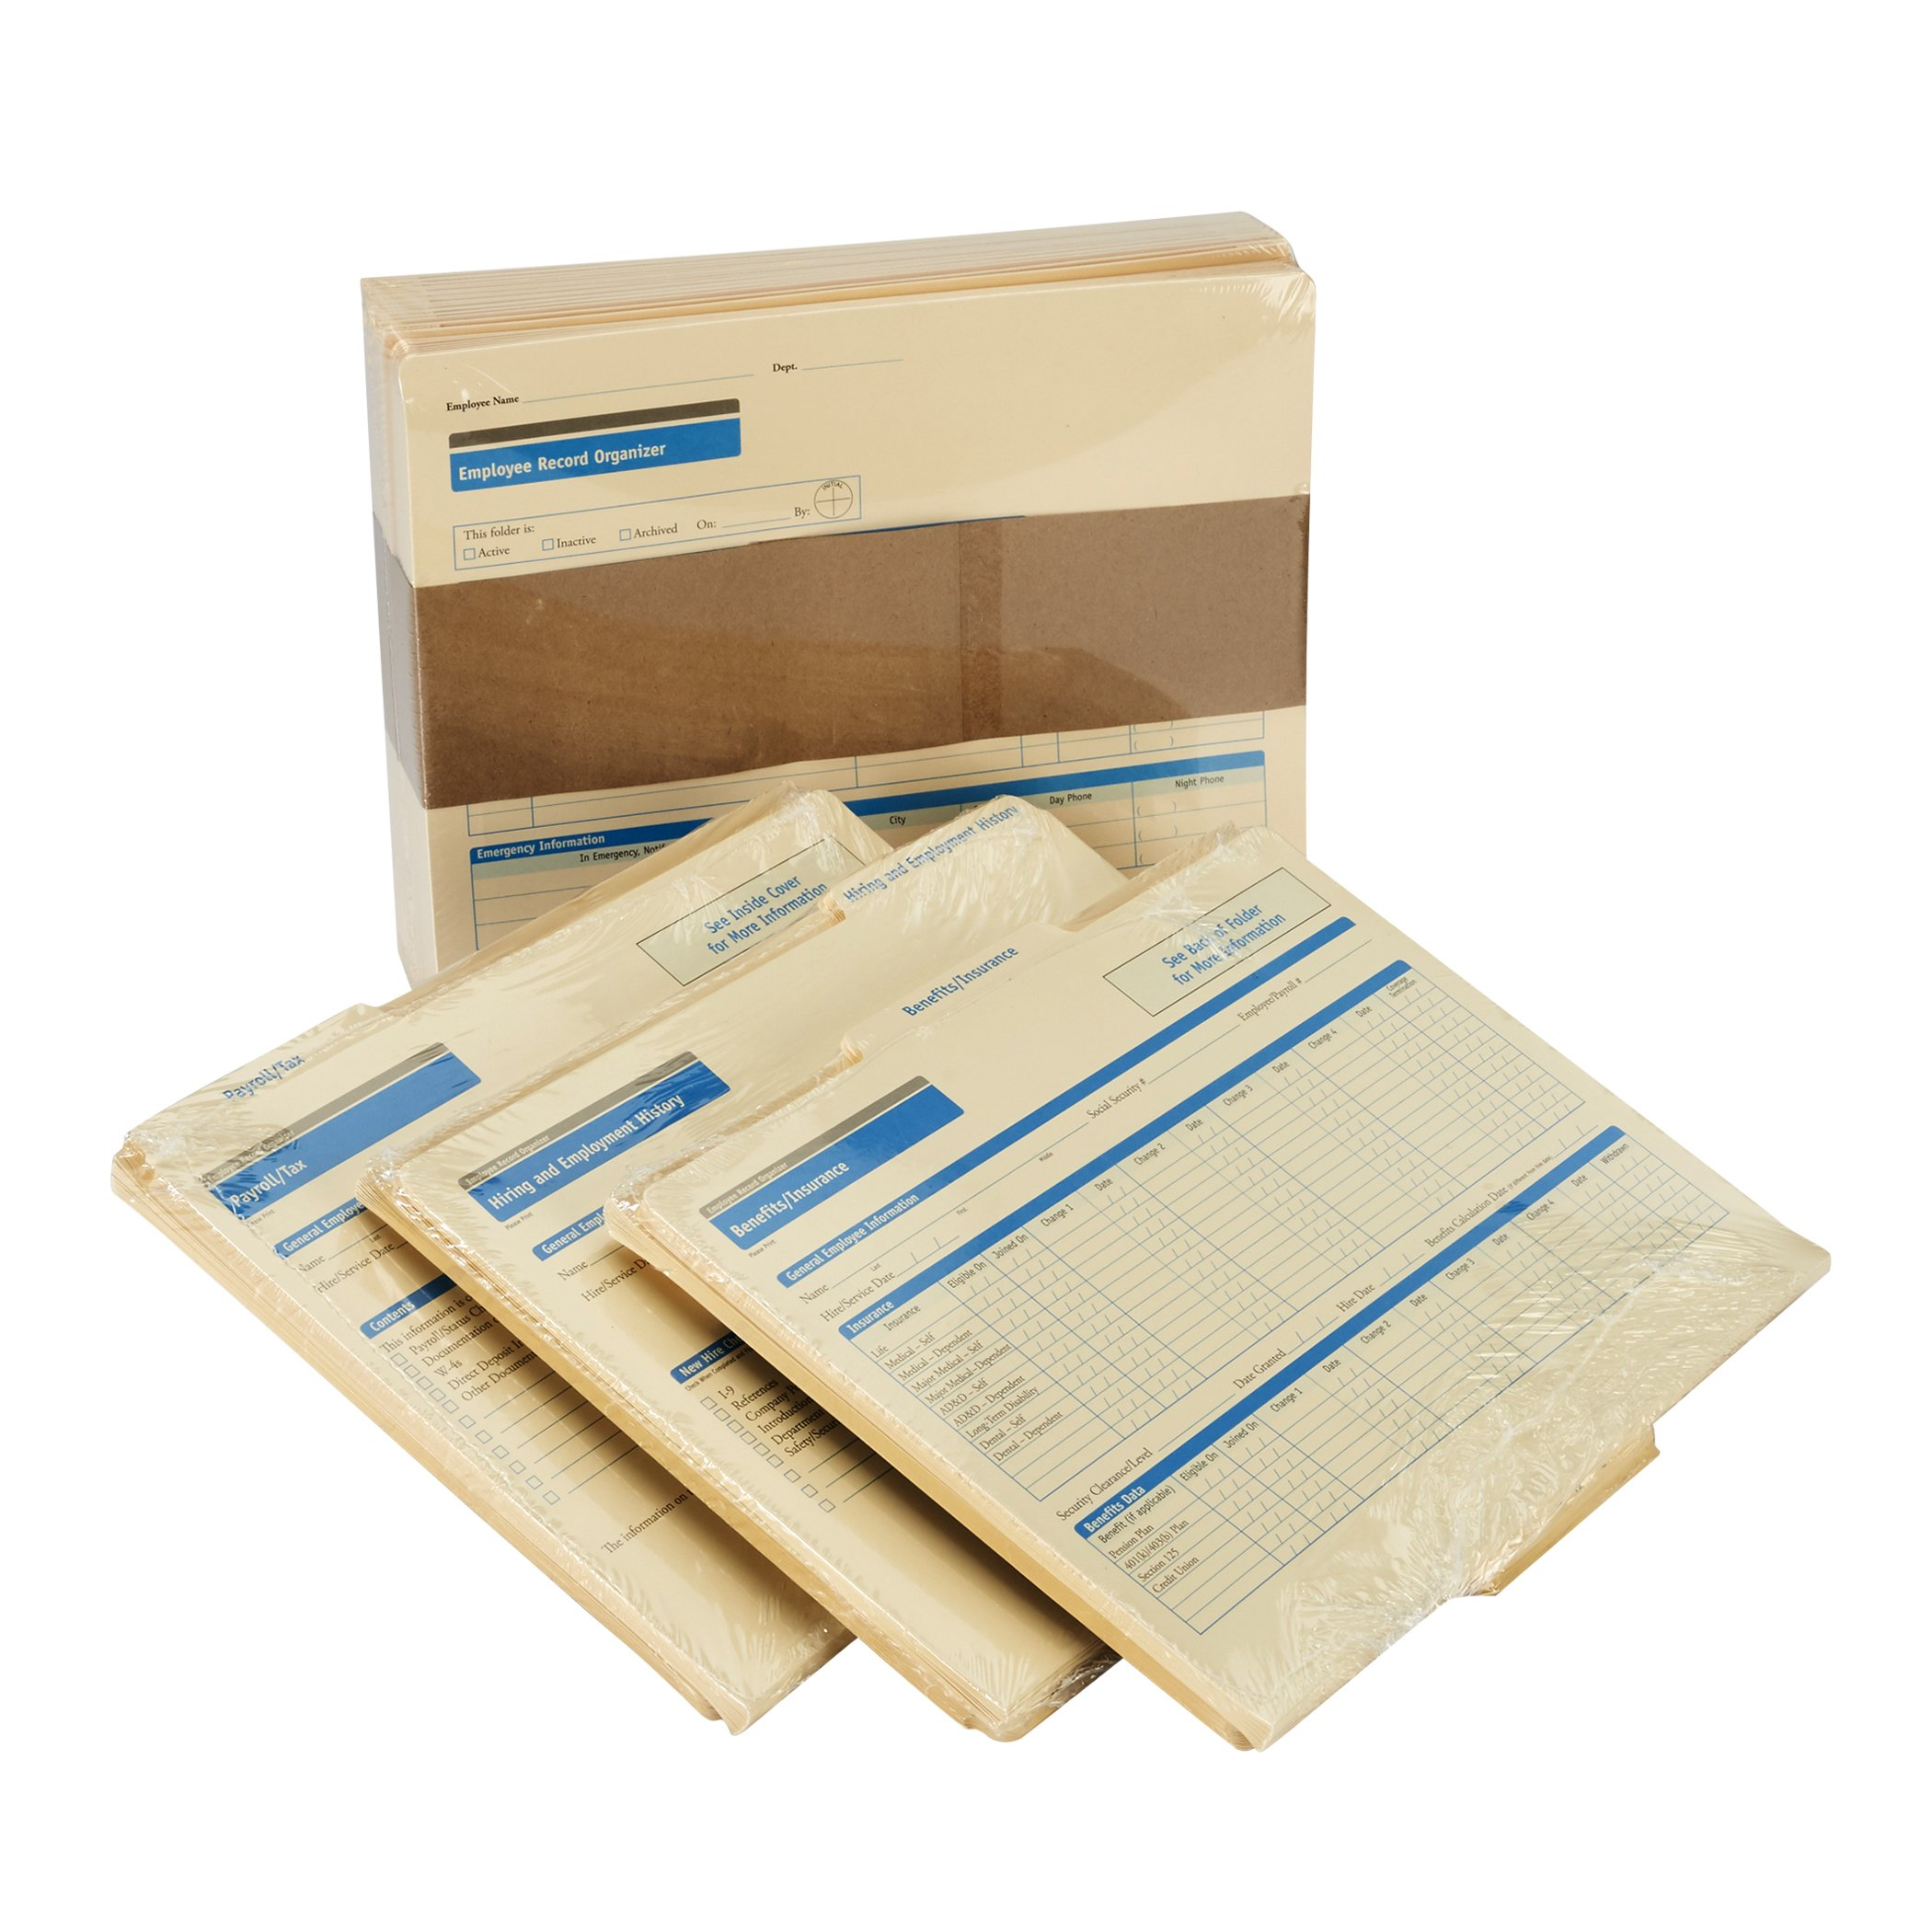 ComplyRight Employee Record Organizer 3-Folder Set, 25 Sets by ComplyRight